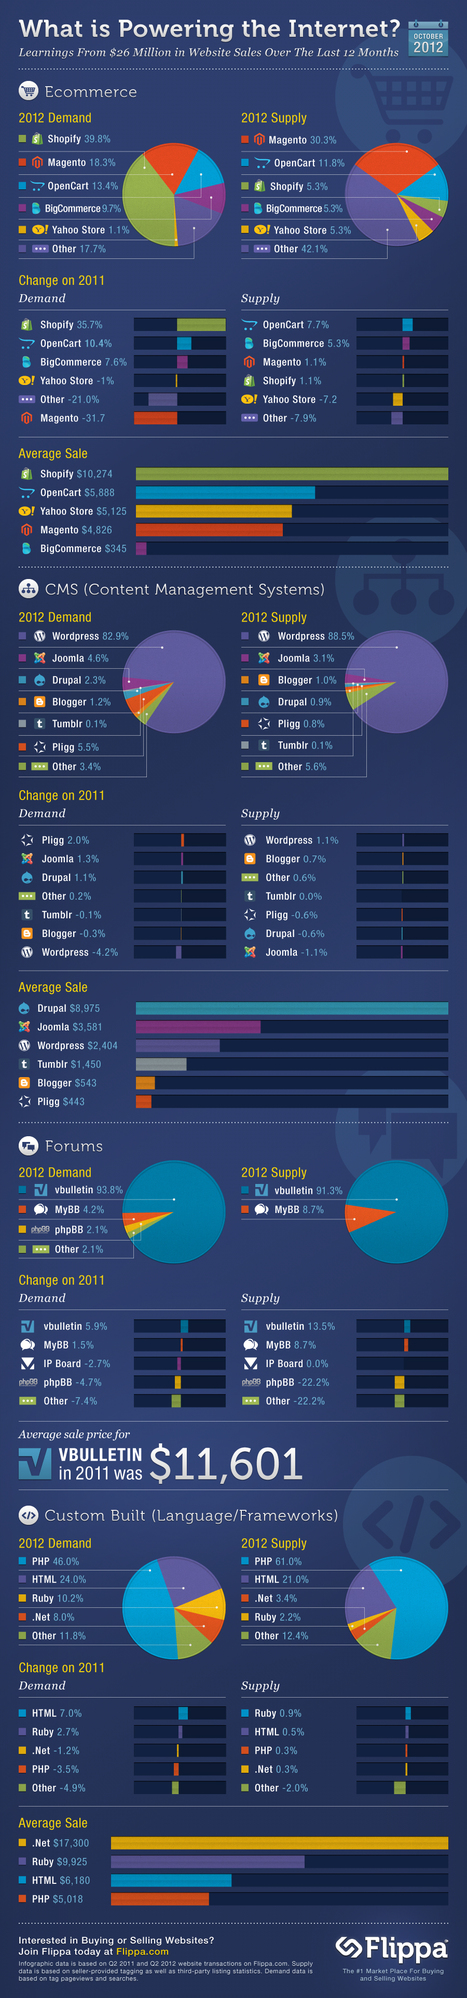 What's Really Powering the Internet? #infographic | e-Commerce Internet | Scoop.it